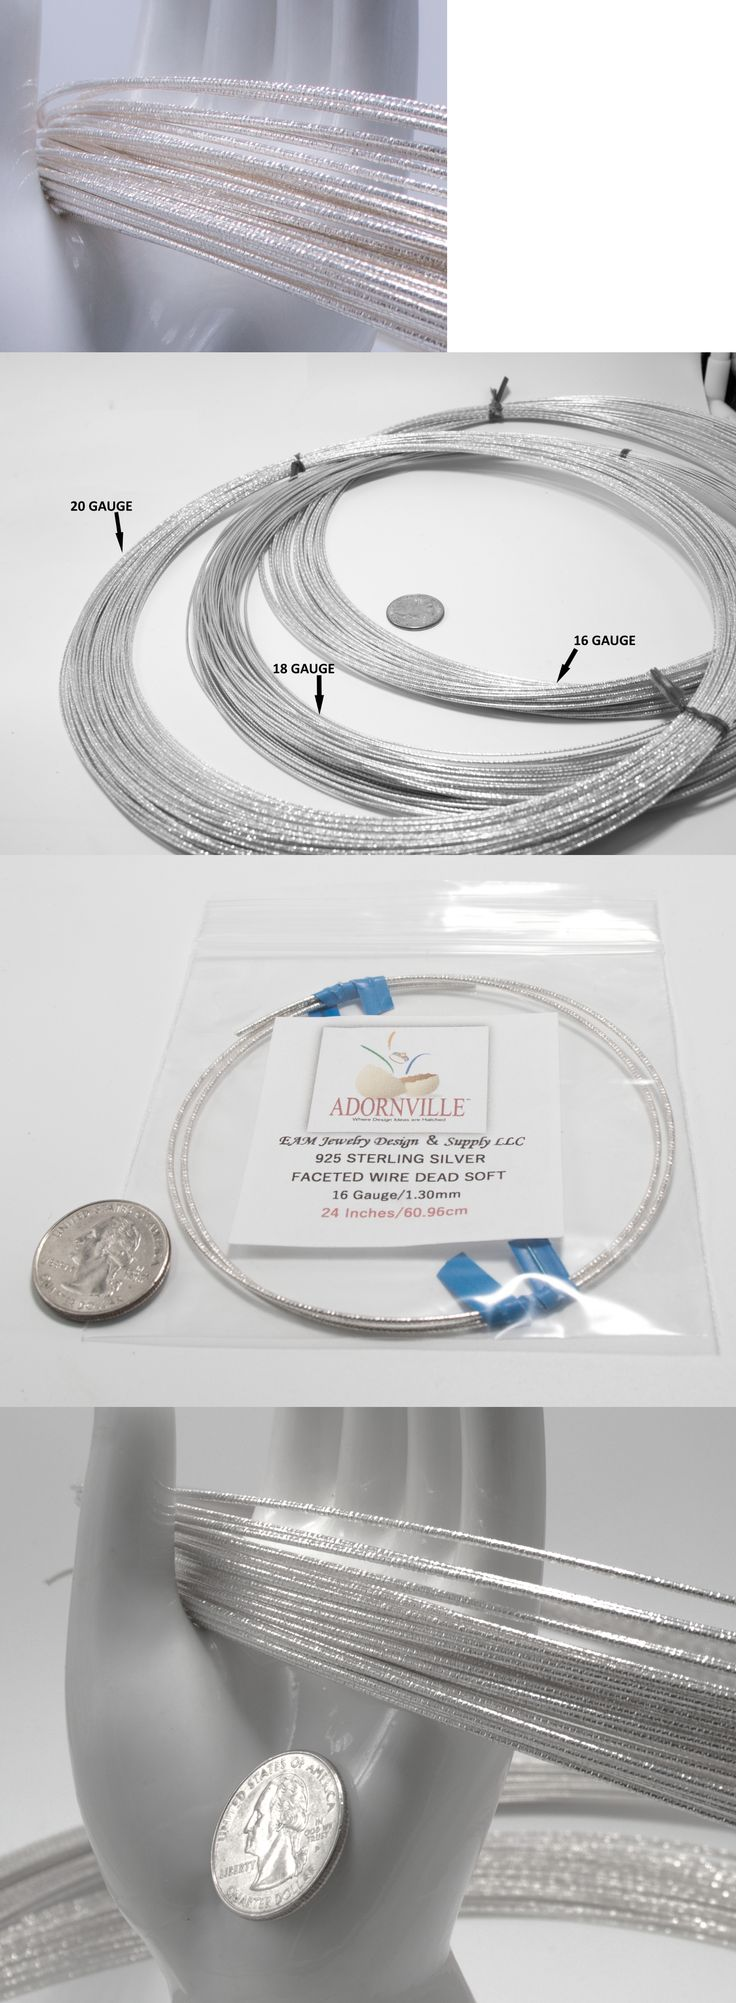 Wire 67714: 10K Yellow Solid Gold 22G Round Wire Ds - 1 Foot BUY IT ...